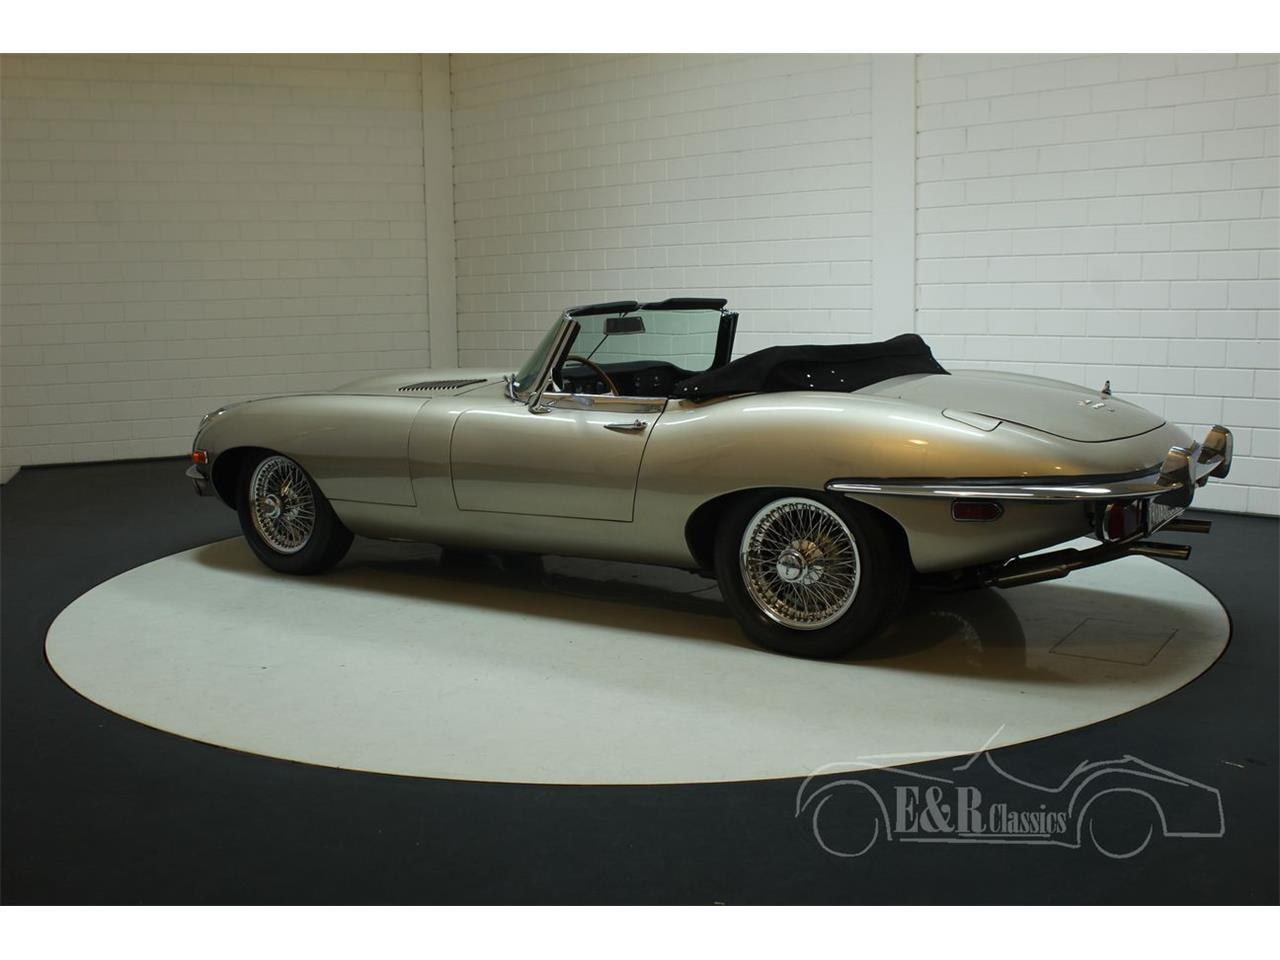 Large Picture of Classic '70 E-Type located in Waalwijk - Keine Angabe - Offered by E & R Classics - PH40